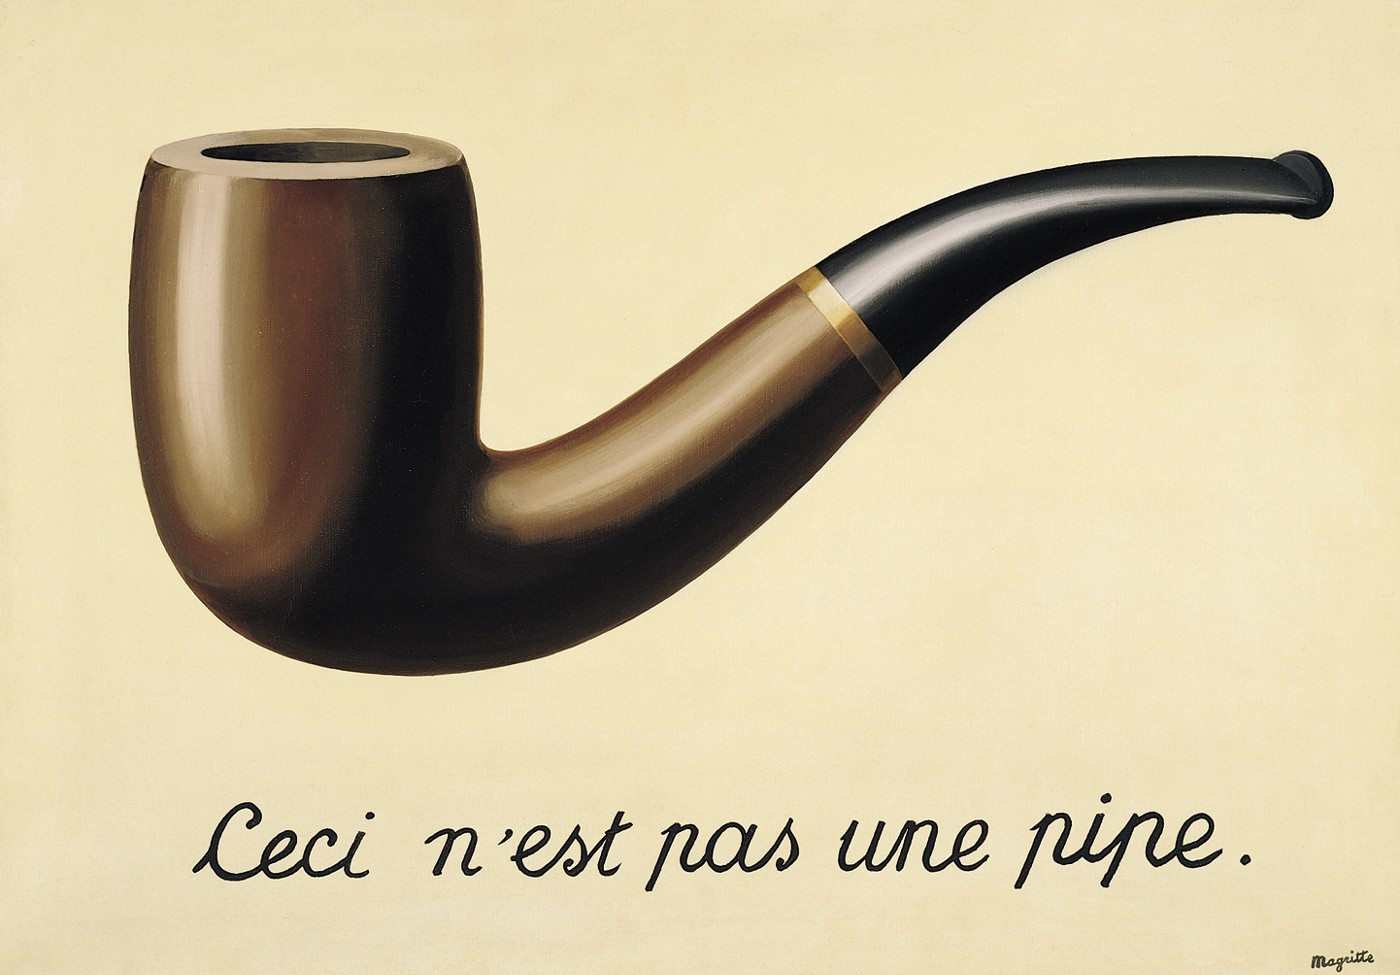 The Treachery of Images or Ceci n'est pas une pipe (This is not a pipe) by René Magritte